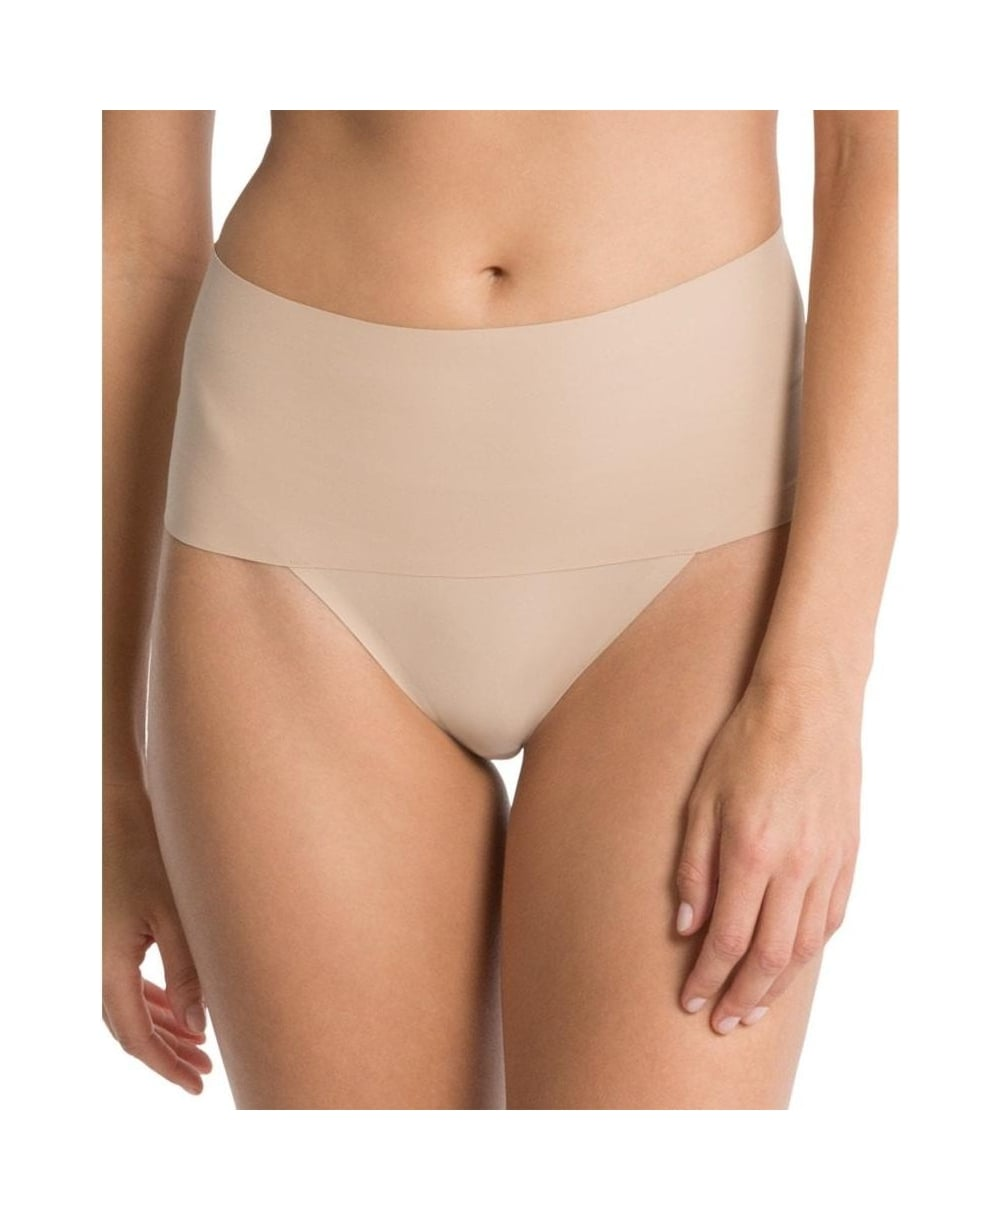 deac3ab6e67d2 Spanx Undie-Tectable Thong - Shapewear from luxury-legs.com UK